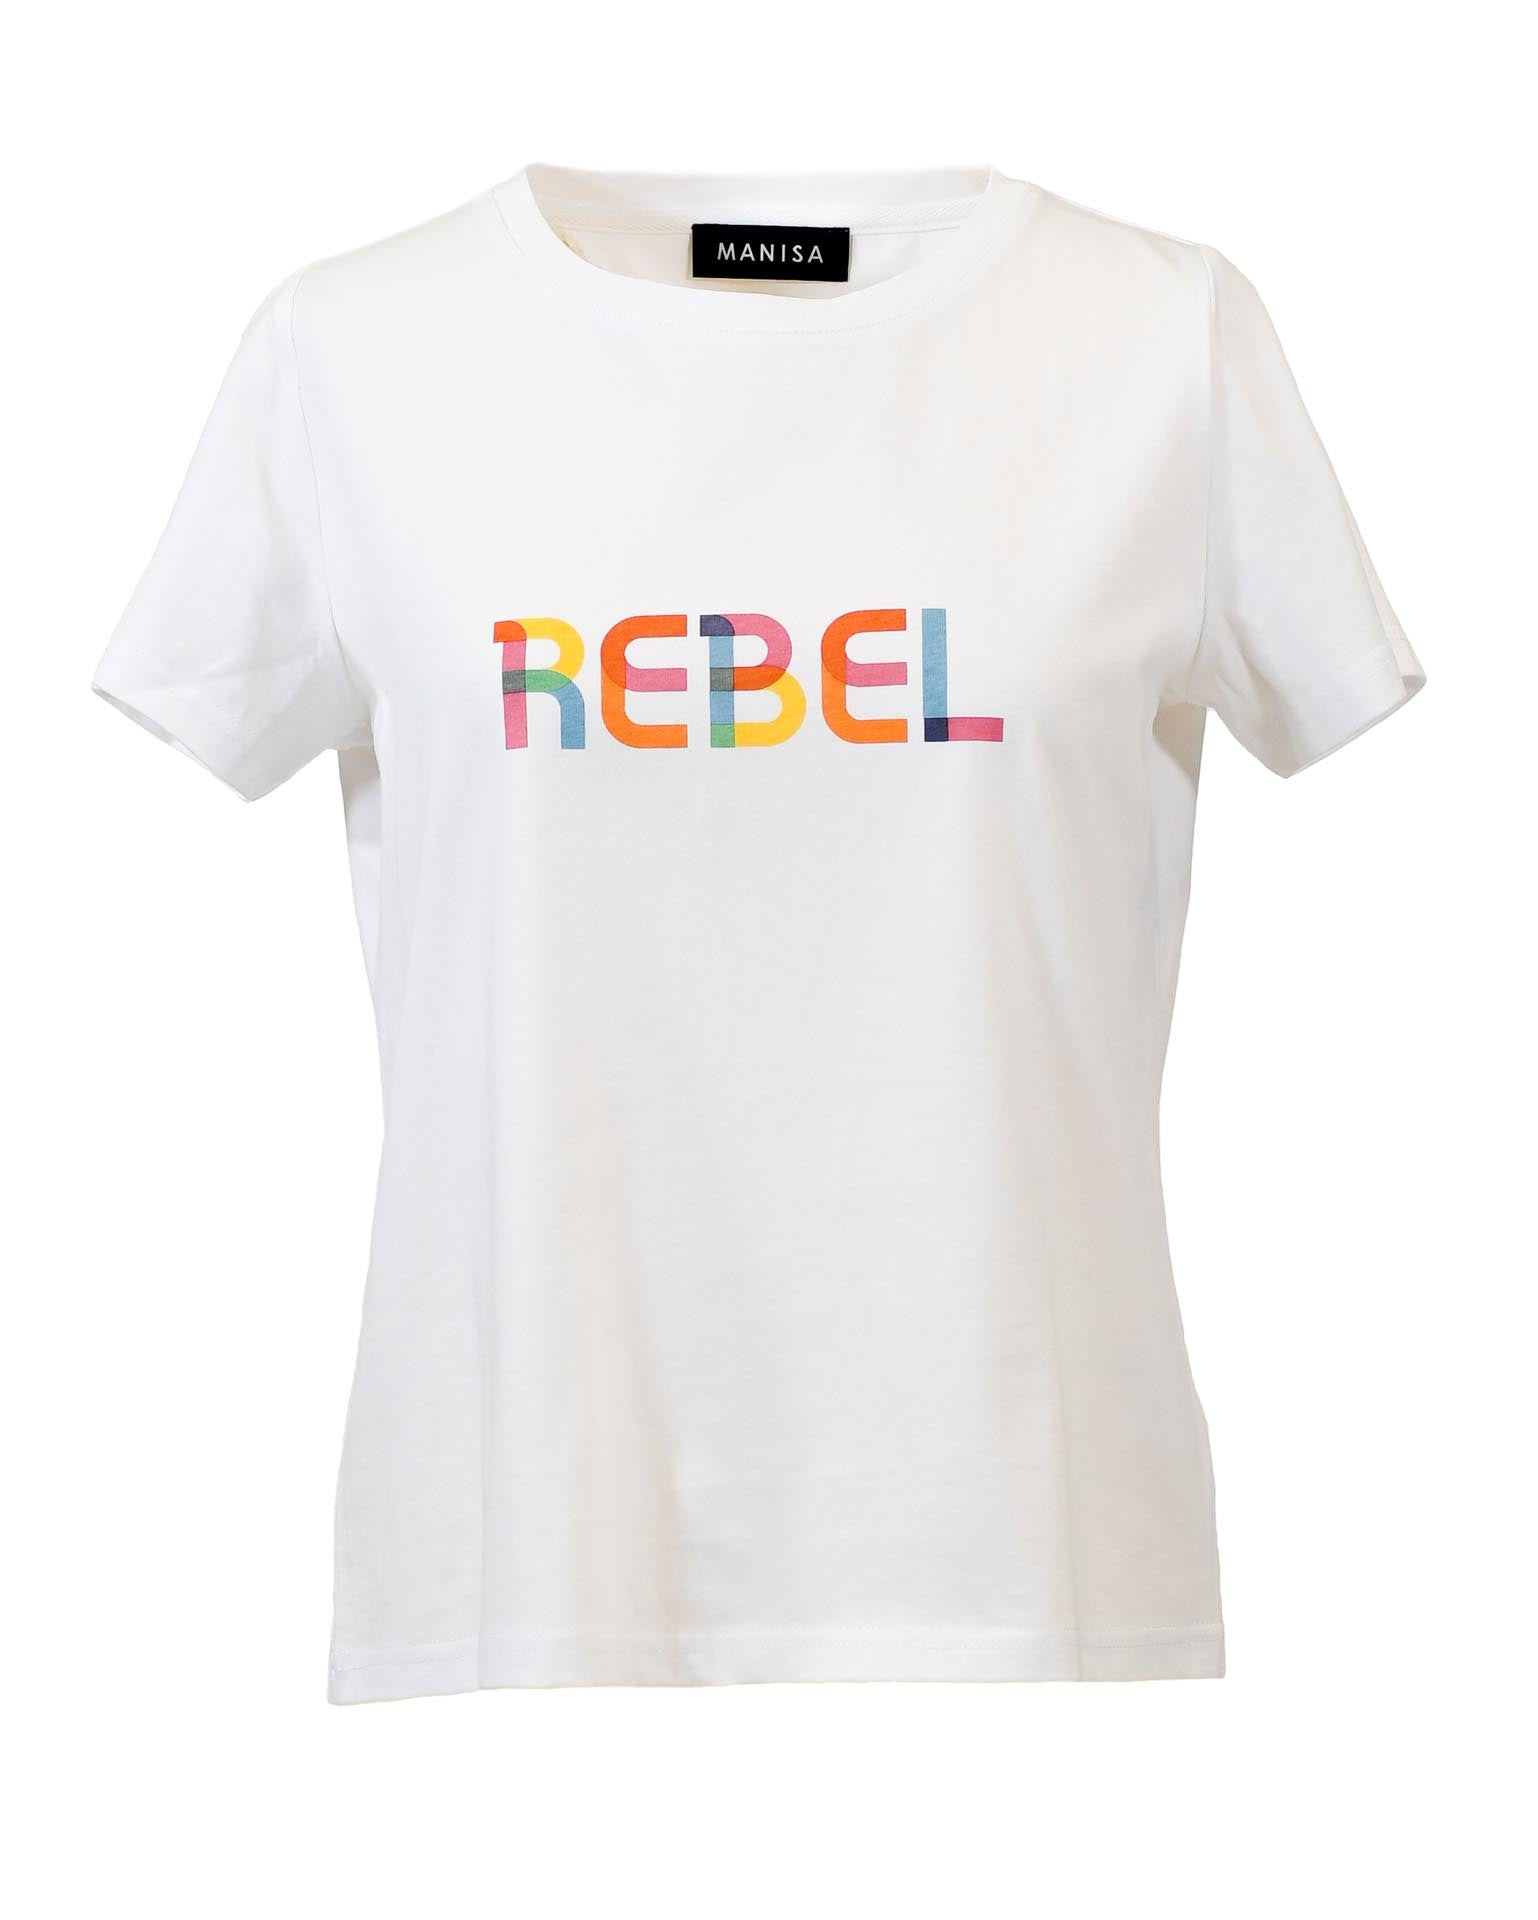 Statement Shirt Rebel weiß